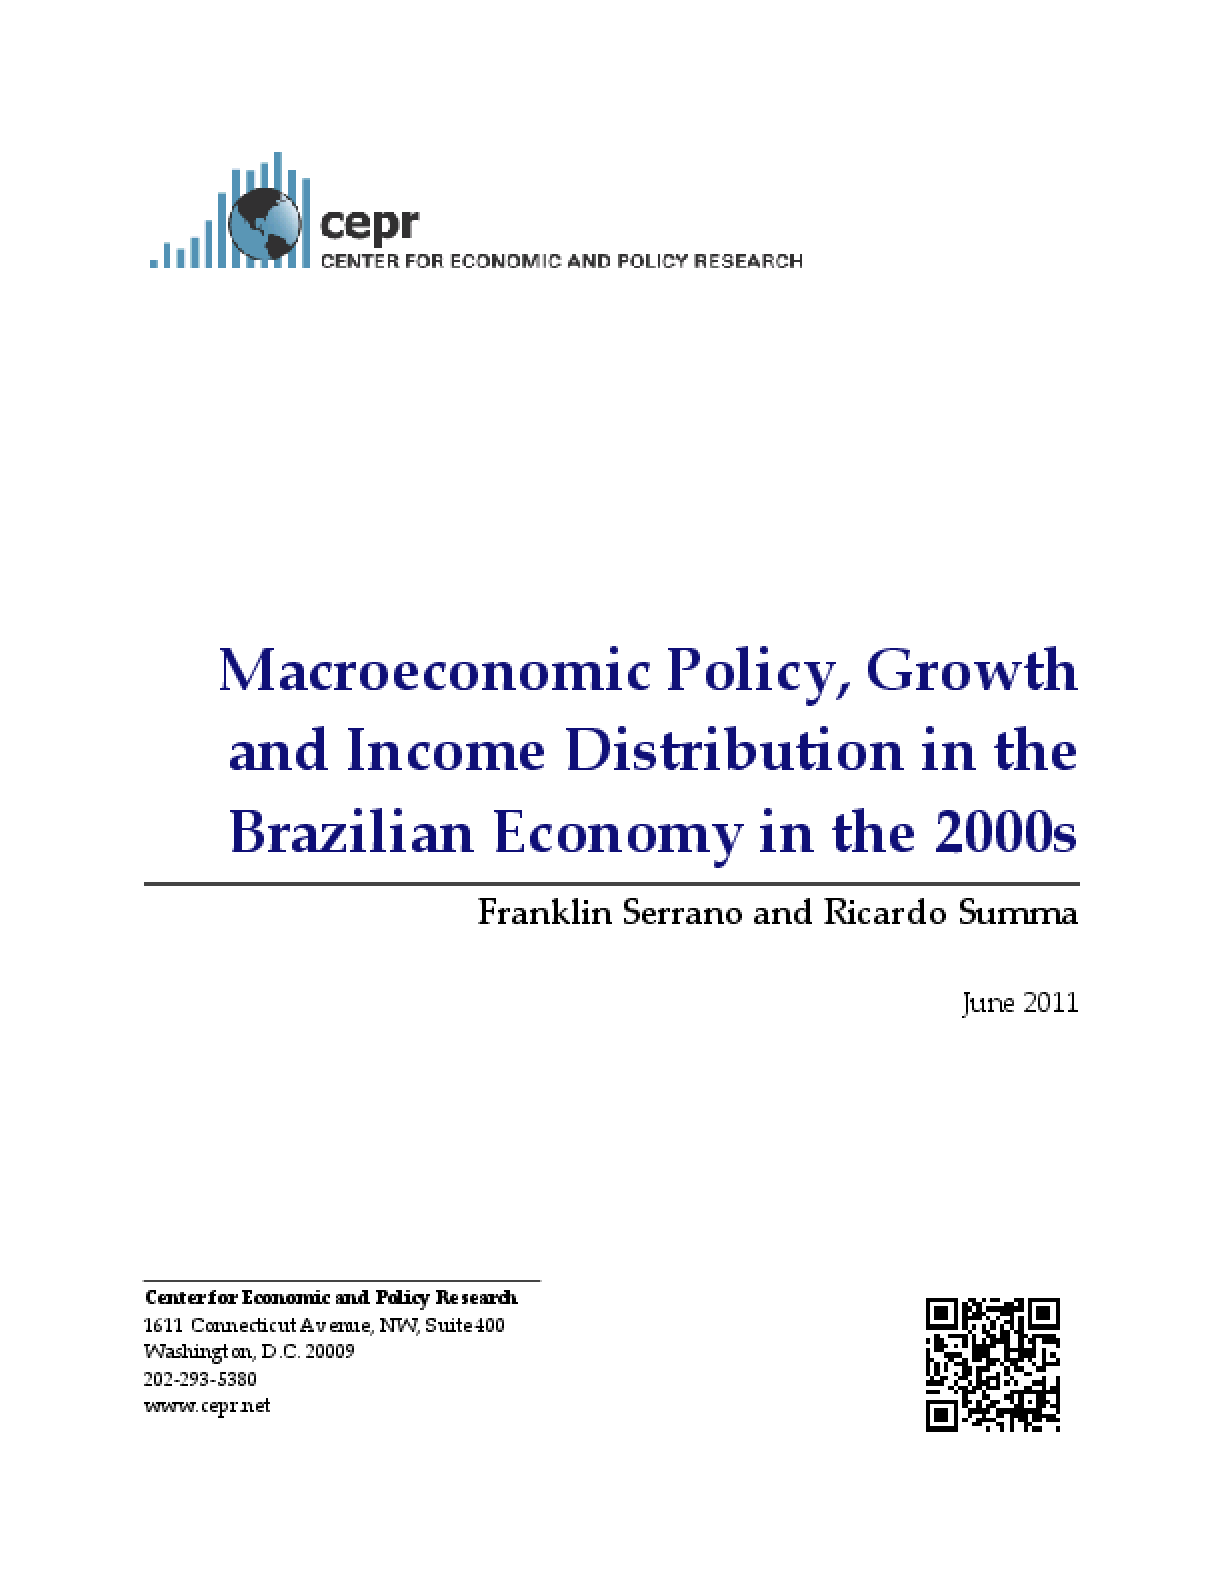 Macroeconomic Policy, Growth and Income Distribution in the Brazilian Economy in the 2000s